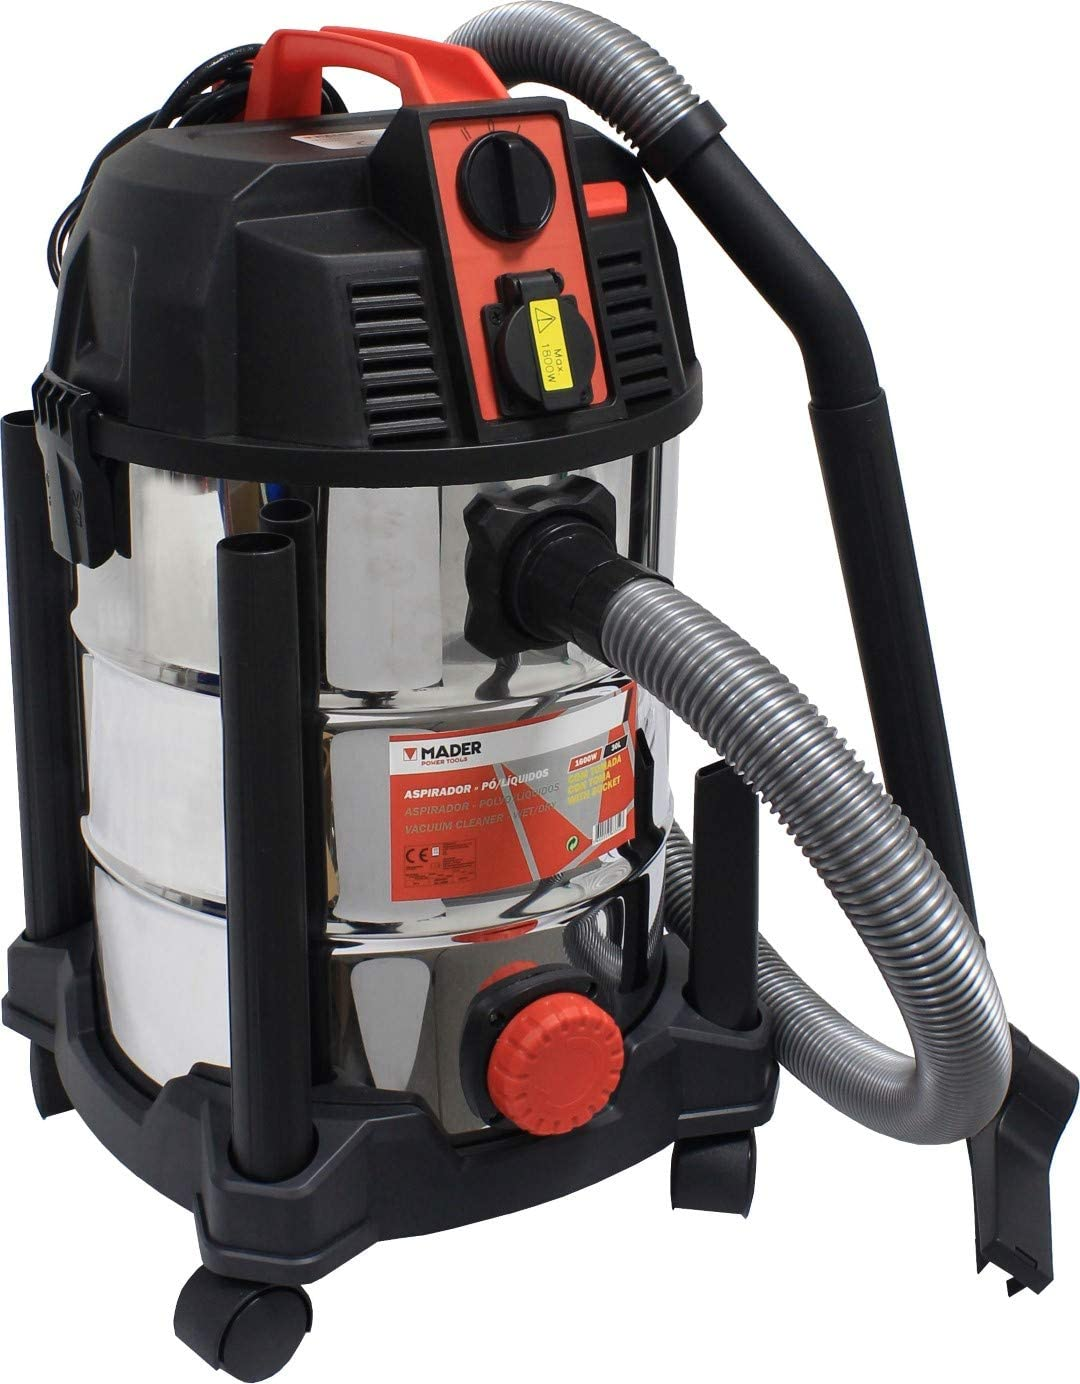 MADER POWER TOOLS Aspirador Polvo y Liquidos 30L - 1600W: Amazon ...